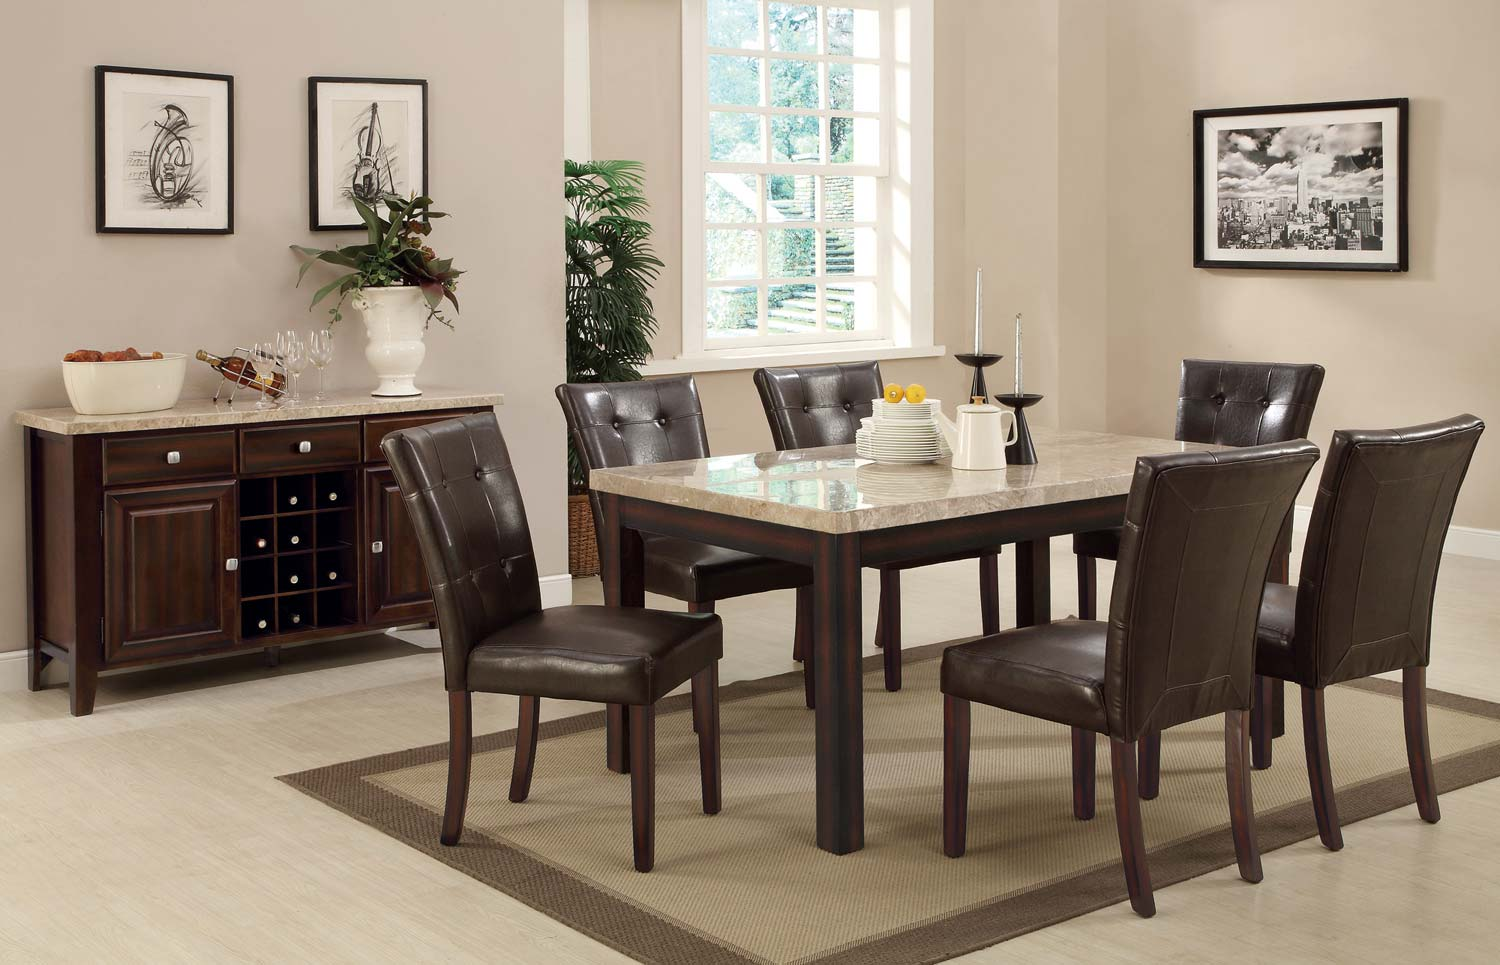 Coaster Milton Rectangular Dining Set - Light Top - Cappuccino